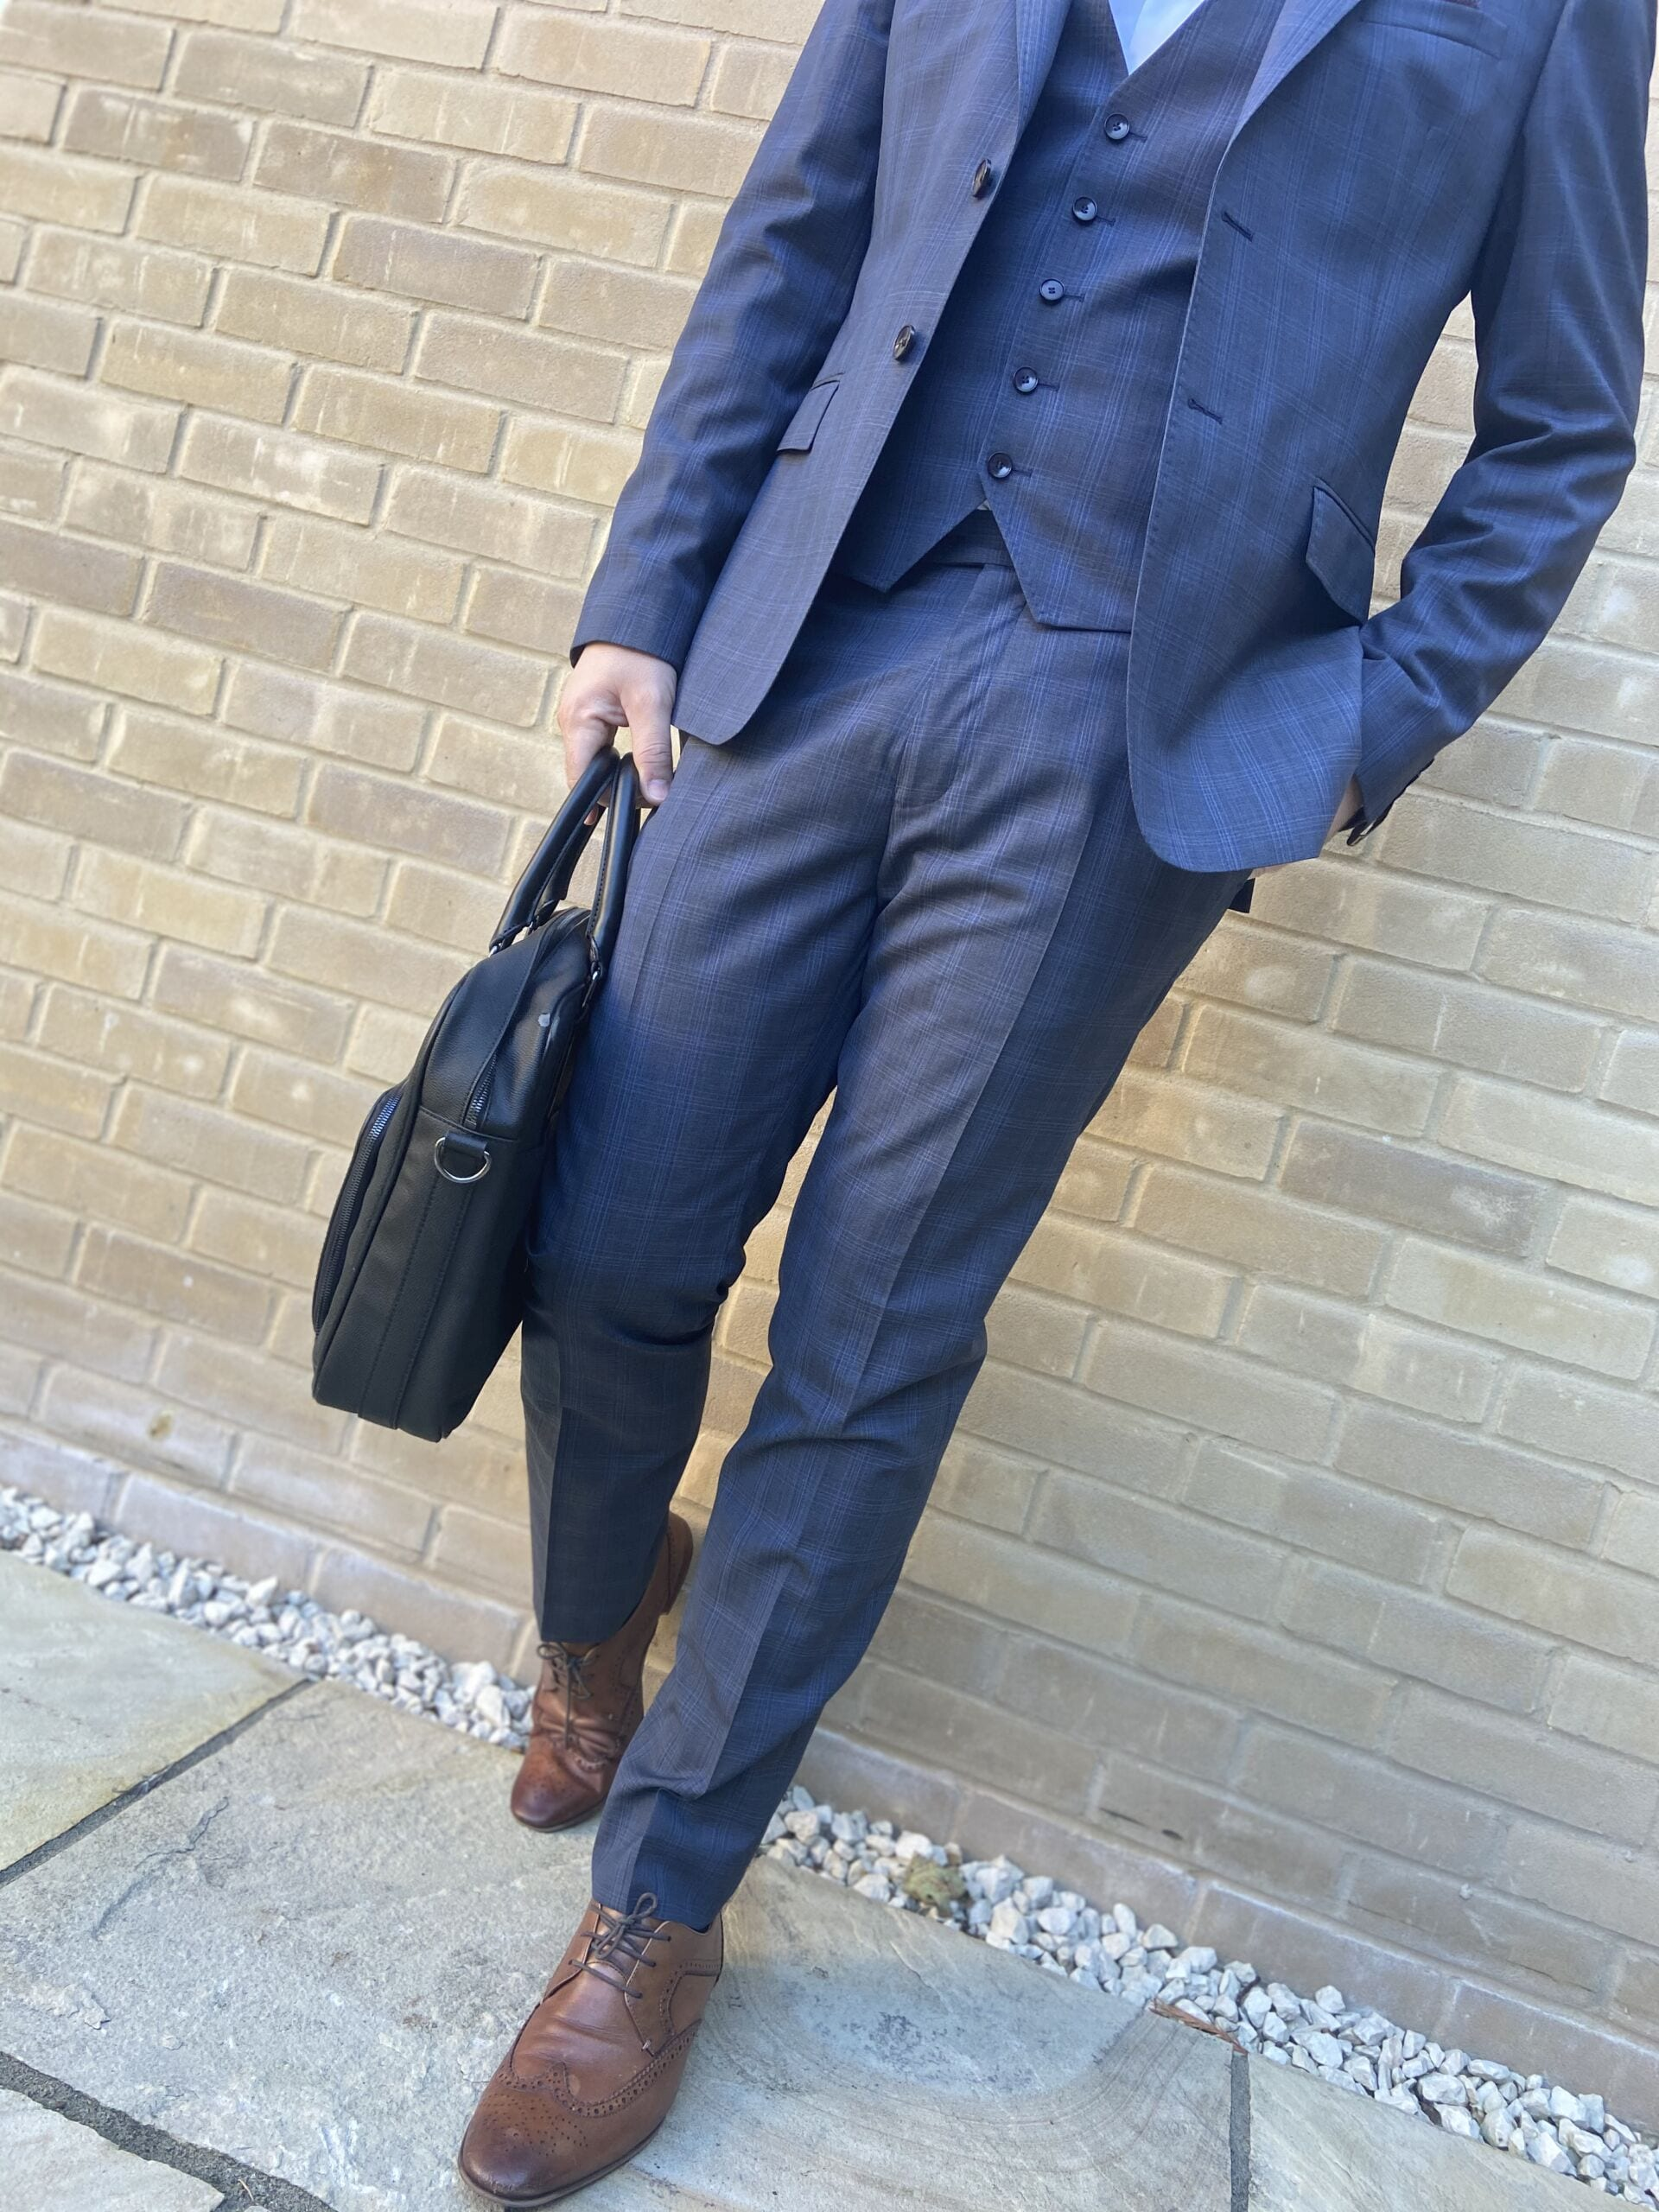 Ted Baker Blue Suit with Bag